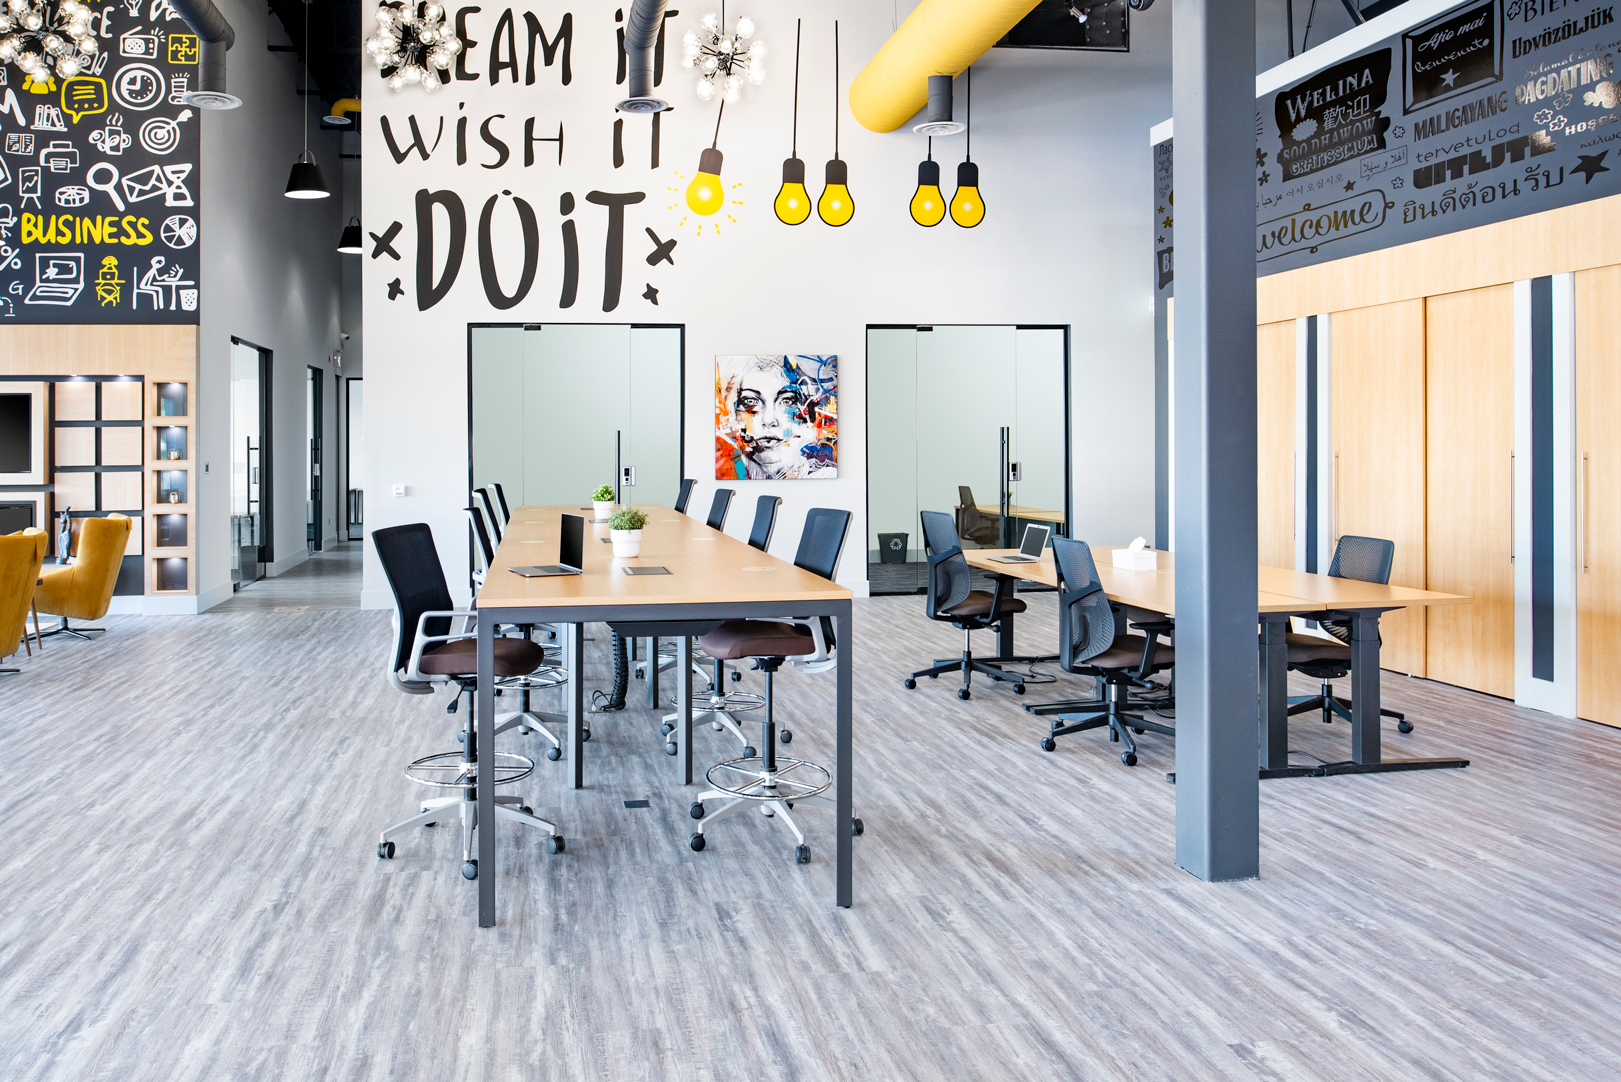 Coworking and Private Office Space in Mississauga, Ontario